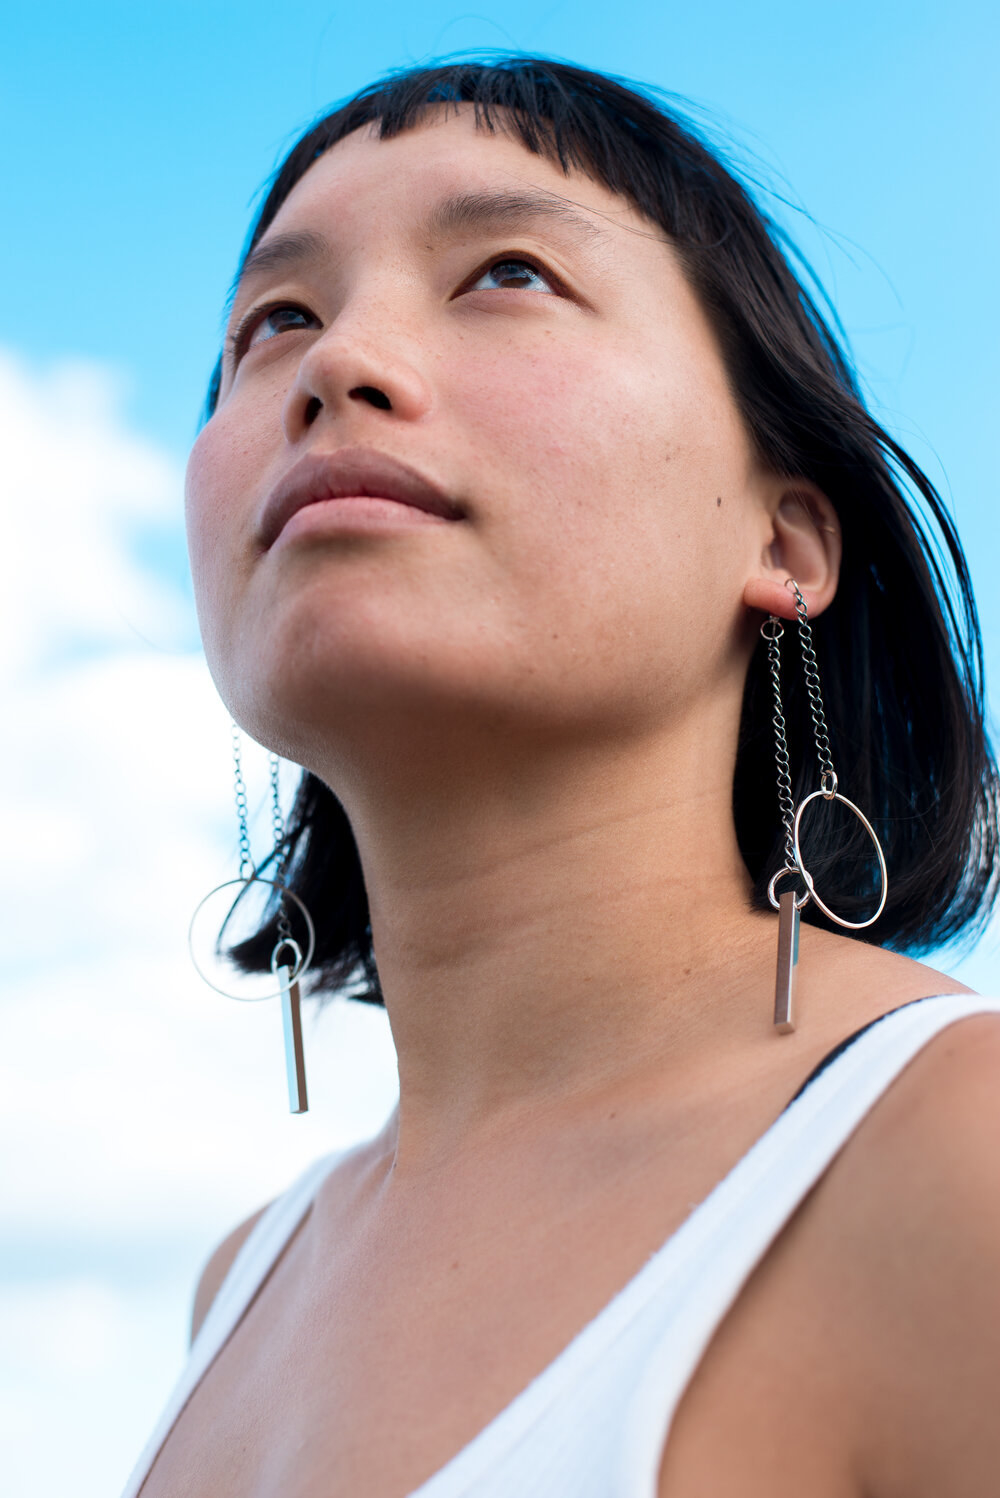 a model wearing the earrings